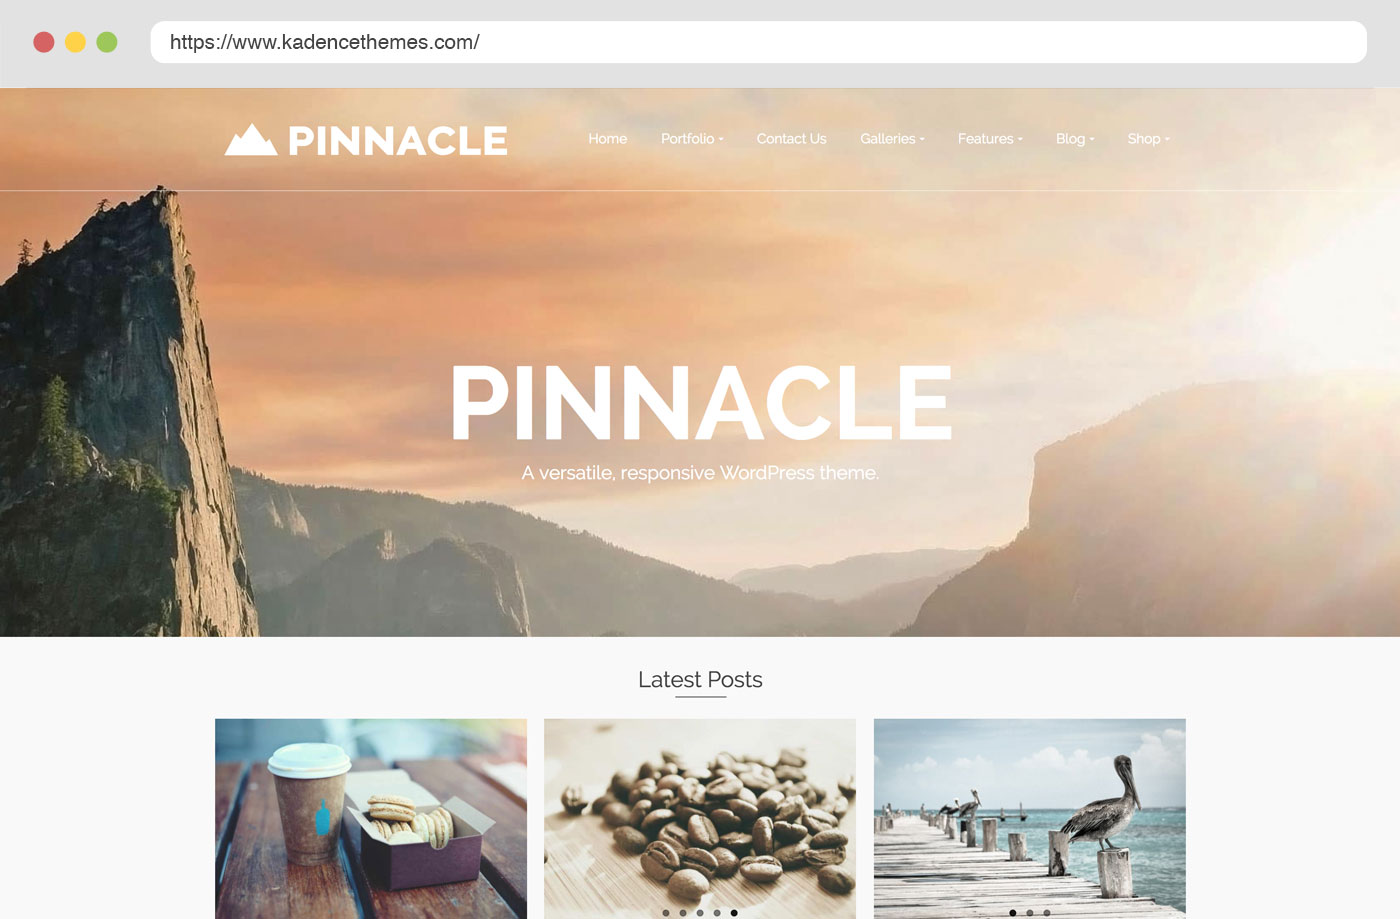 pinnacle free wordpress theme by kadence themes